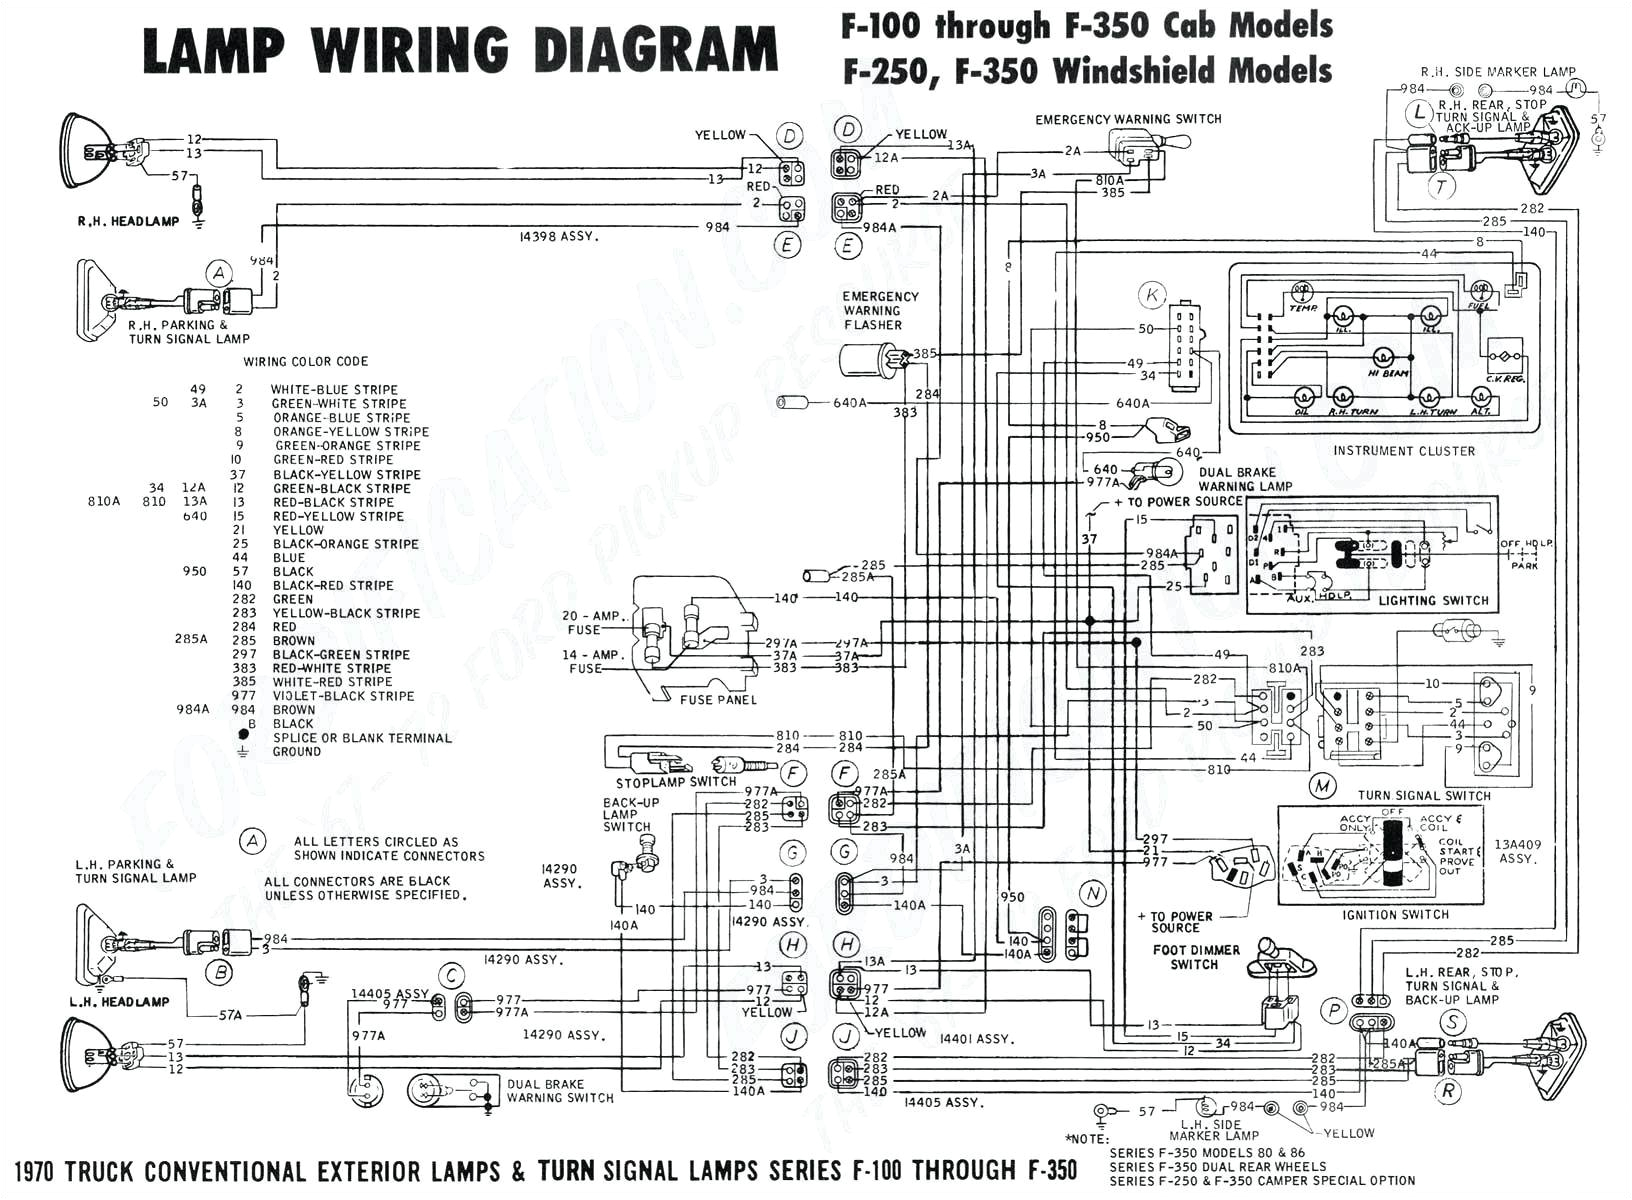 Boiler Control Panel Wiring Diagram Wiring Diagram for Wills Wiring Diagram Sys